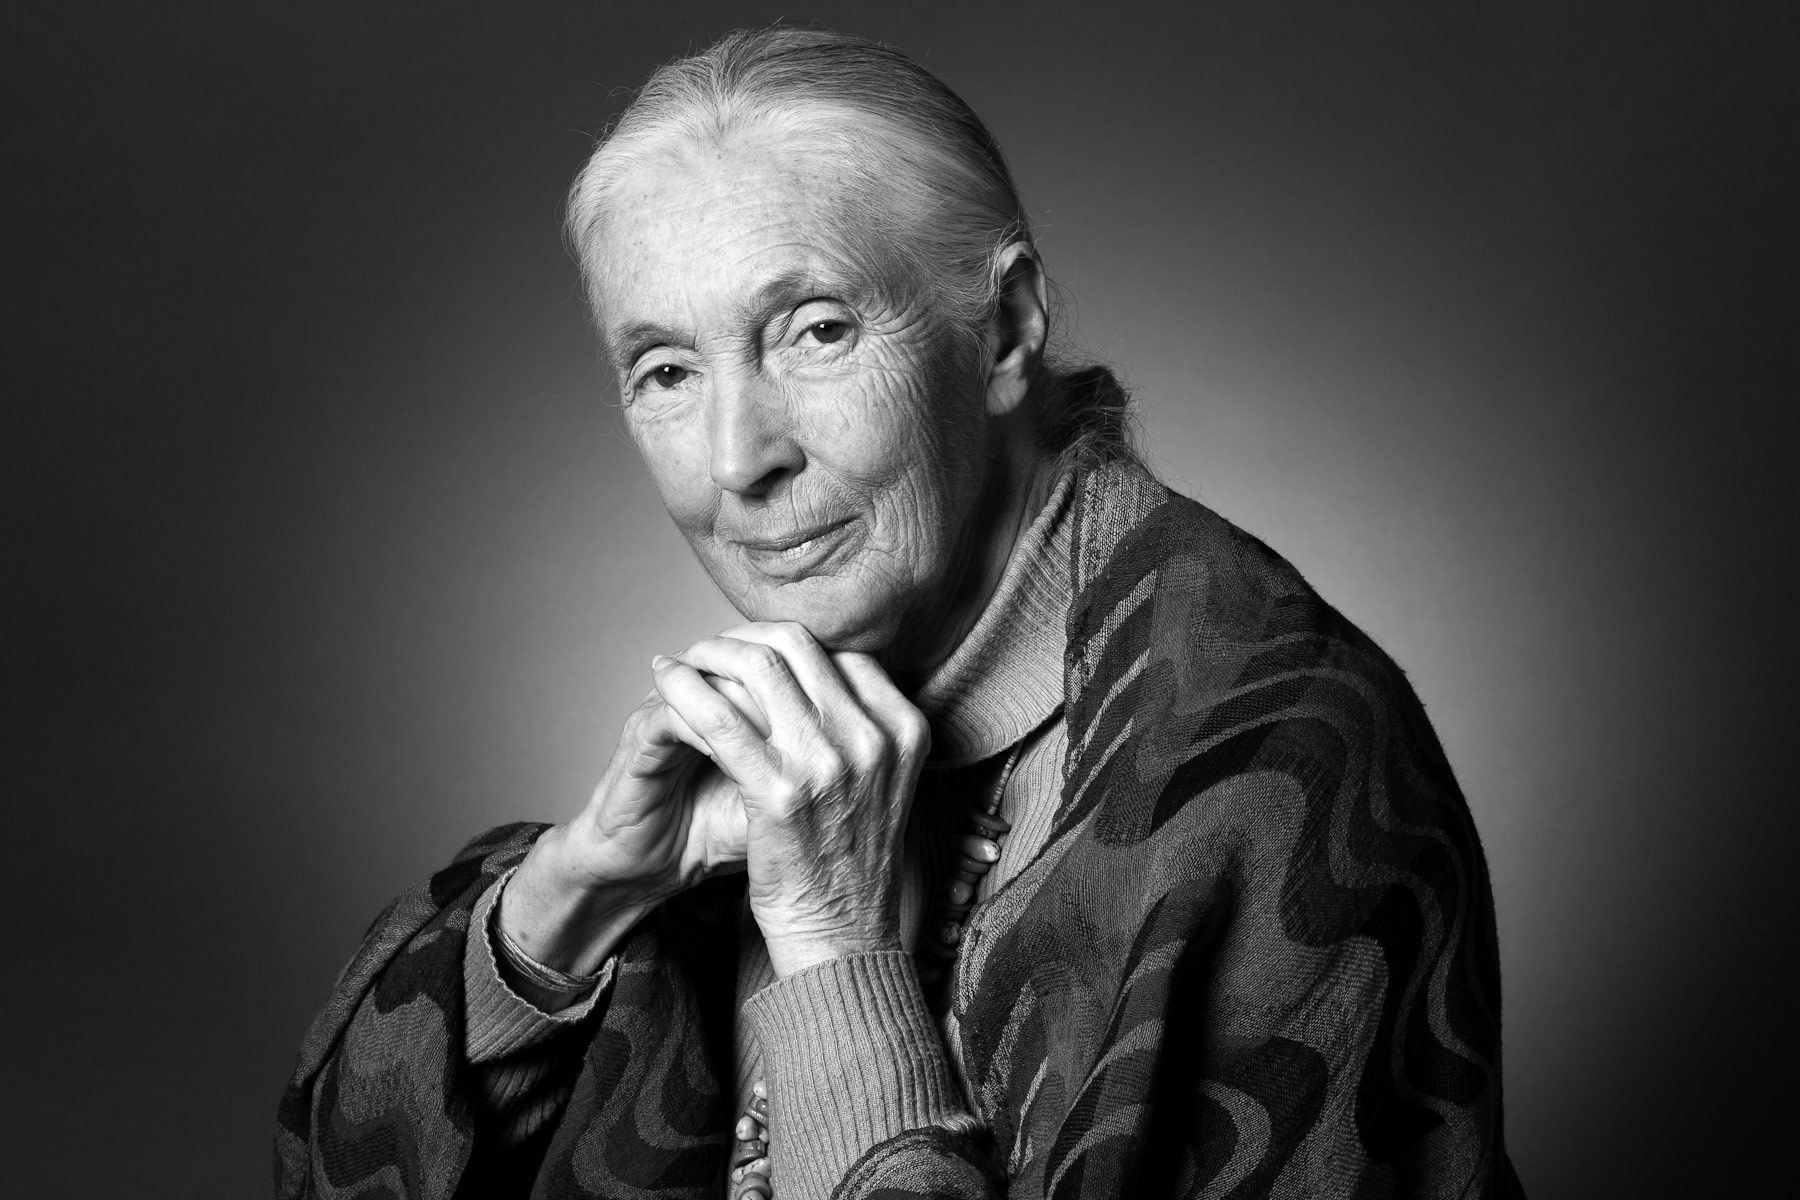 Jane Goodall, naturalist and conservationist